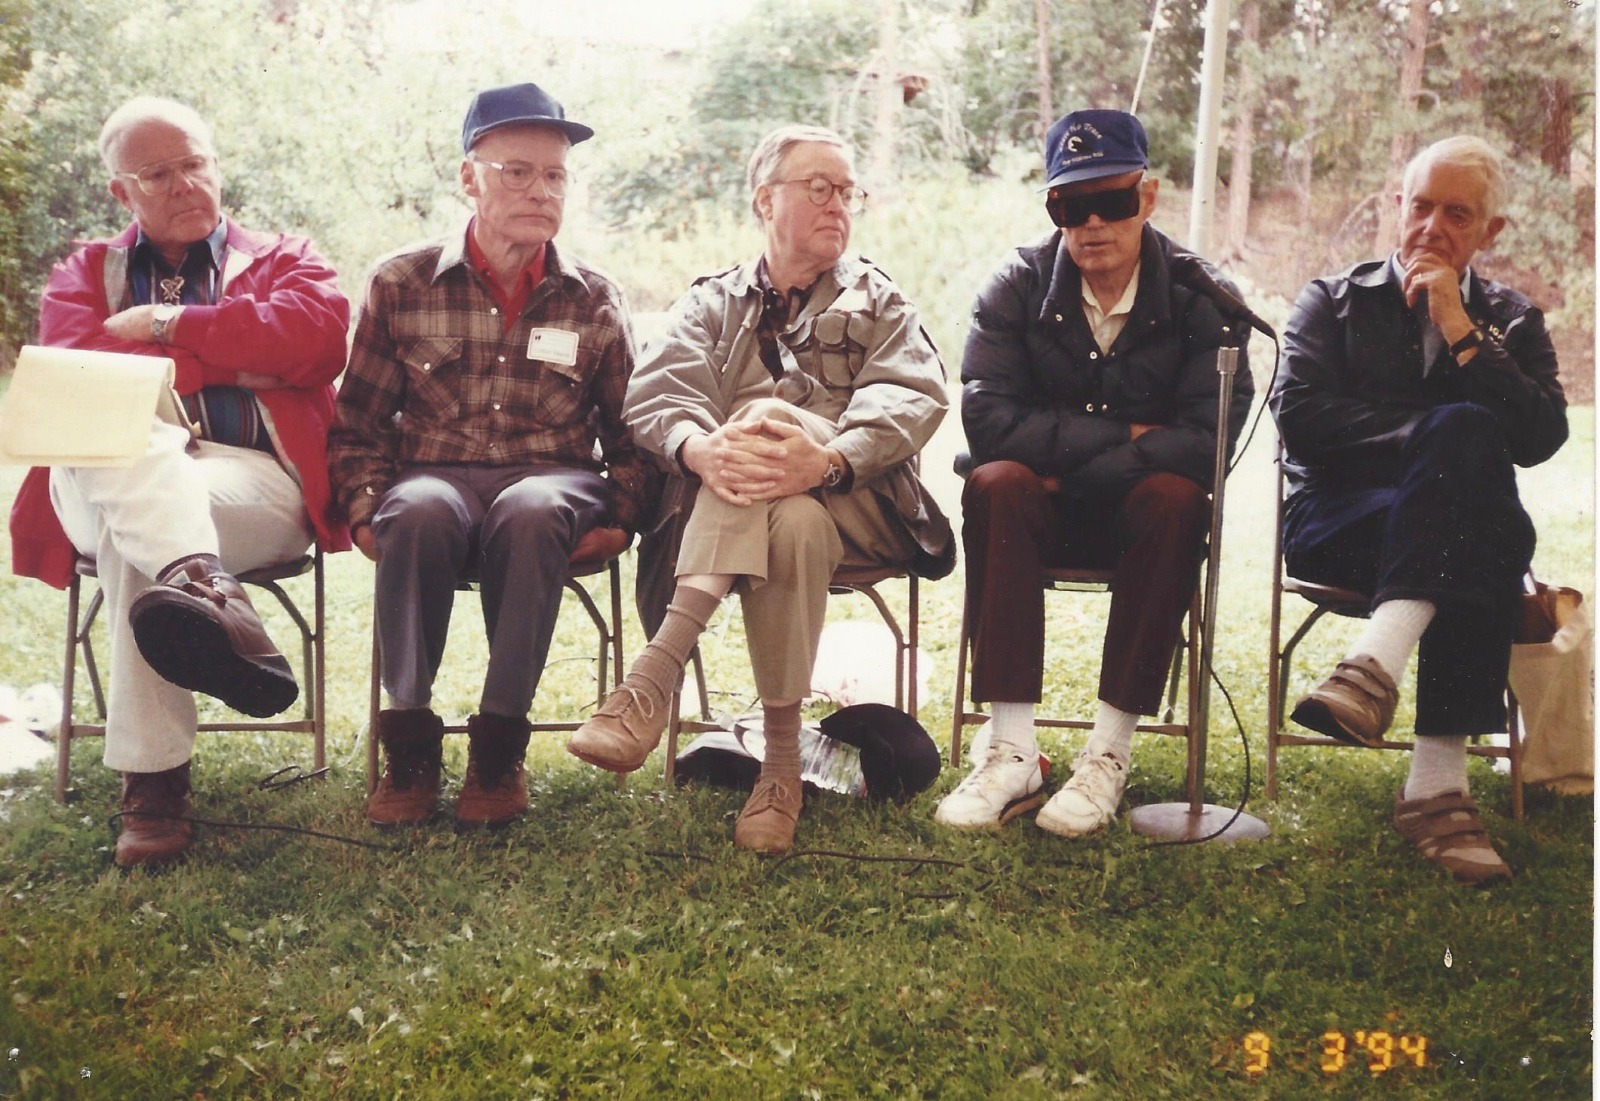 1994, a group of conservation luminaries gathered at the Craighead Institute in Missoula to celebrate the 30th anniversary of the Wilderness Act's passage. Bookending the conversation were Stewart Brandborg, far left, and David Brower, far right. Photo courtesy Larry Campbell